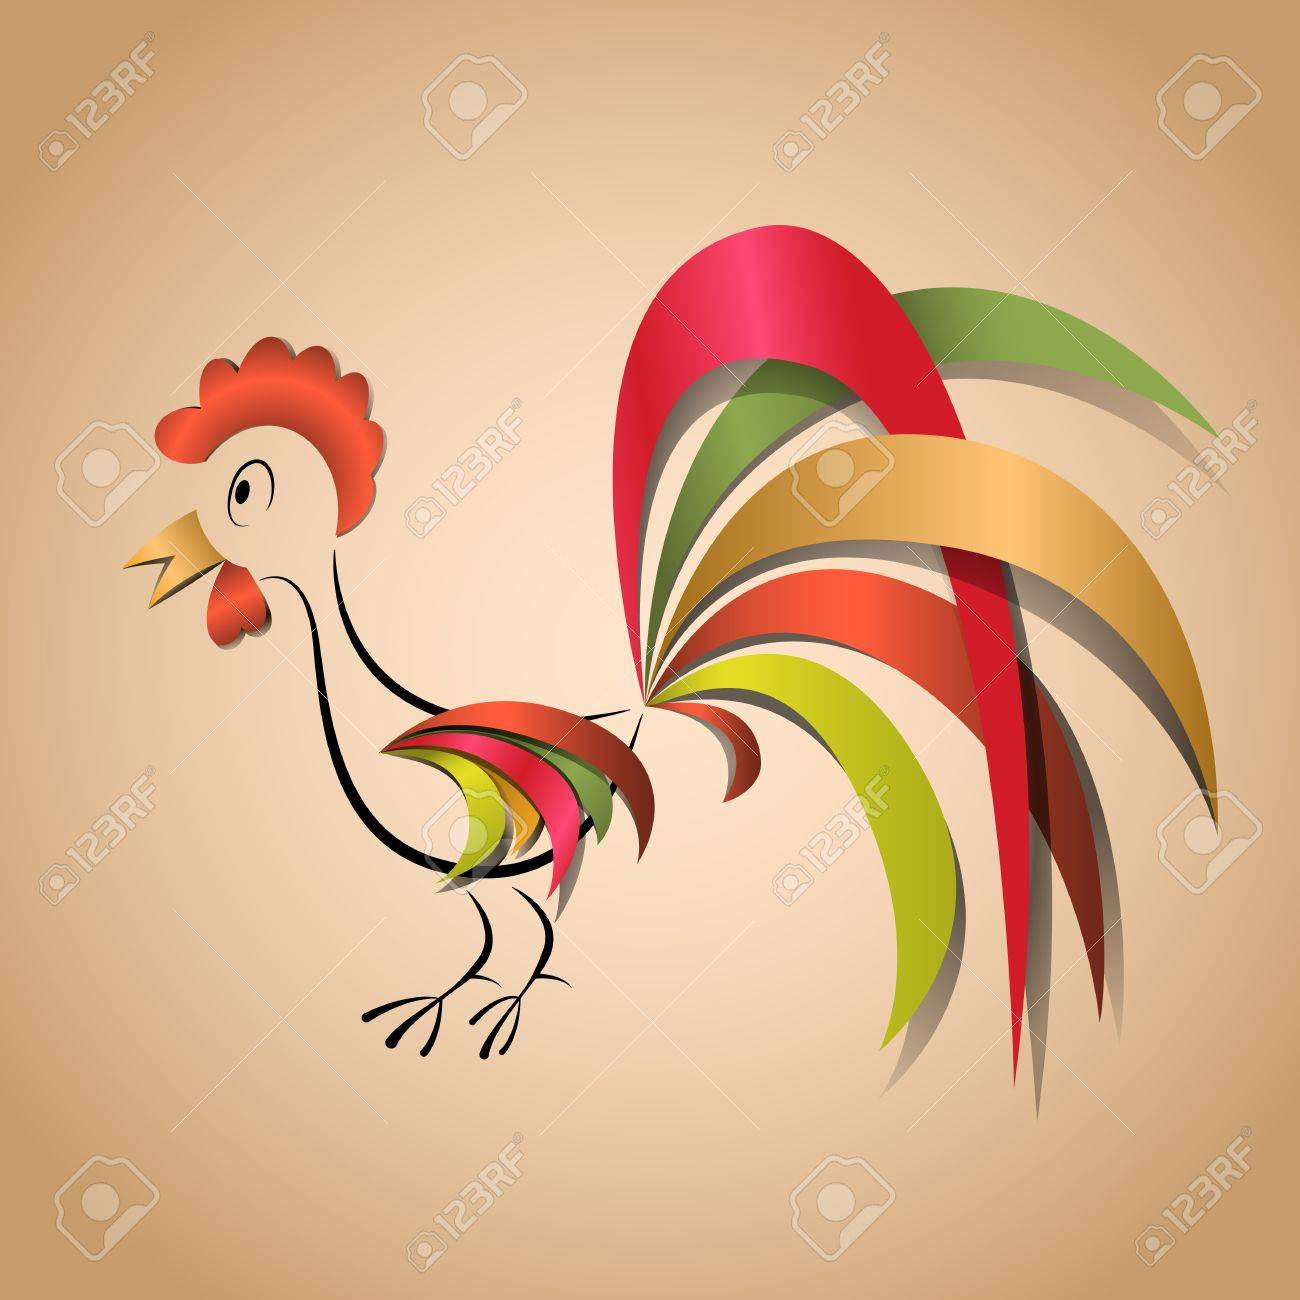 Paper cock application for any background Stock Vector - 13879161